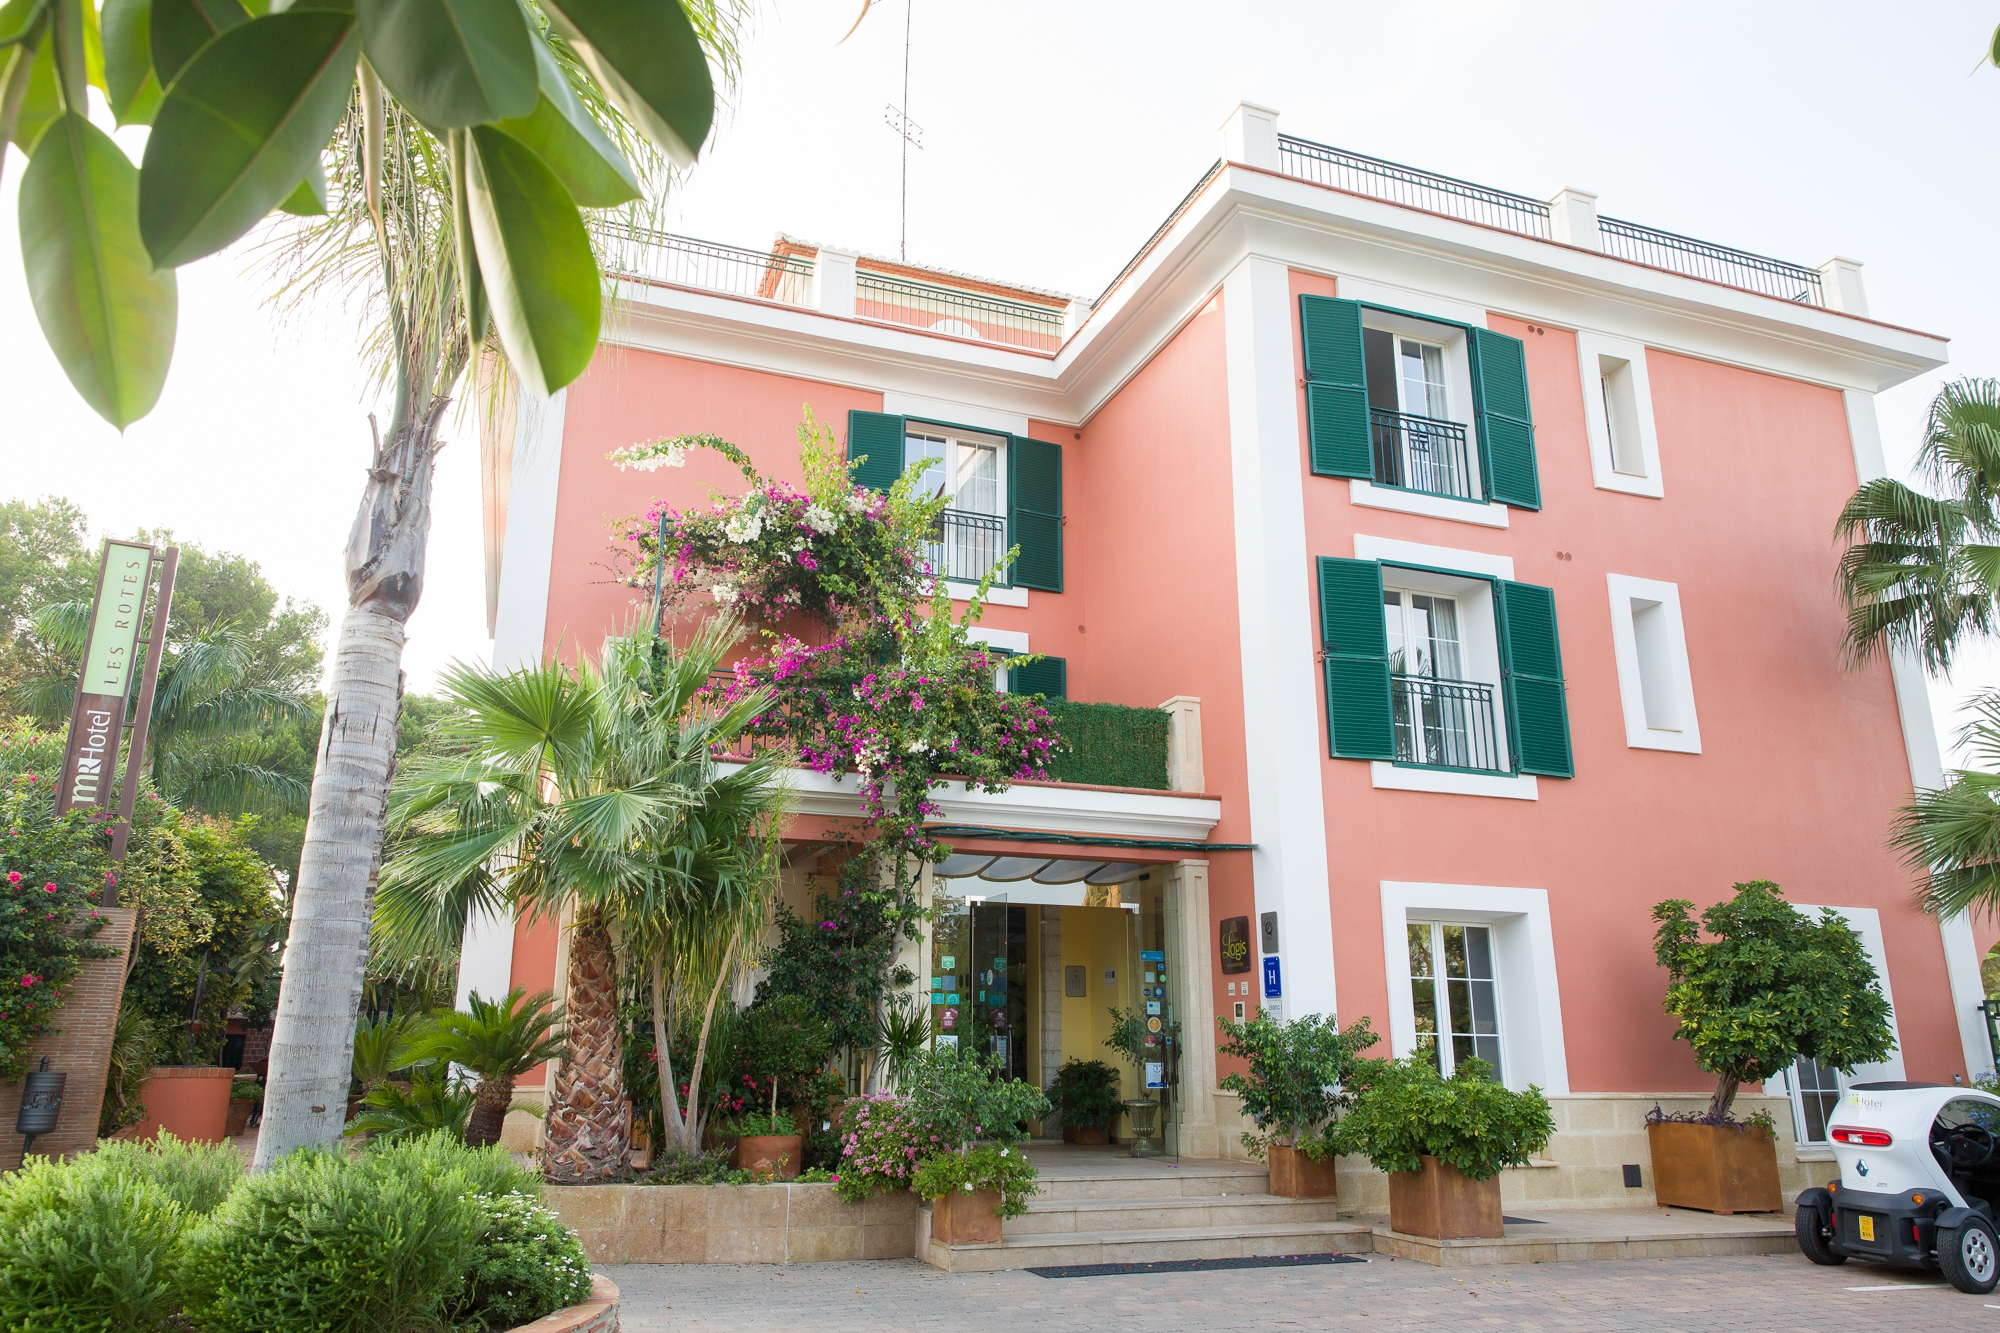 Hotel Les Rotes in Denia, Spain